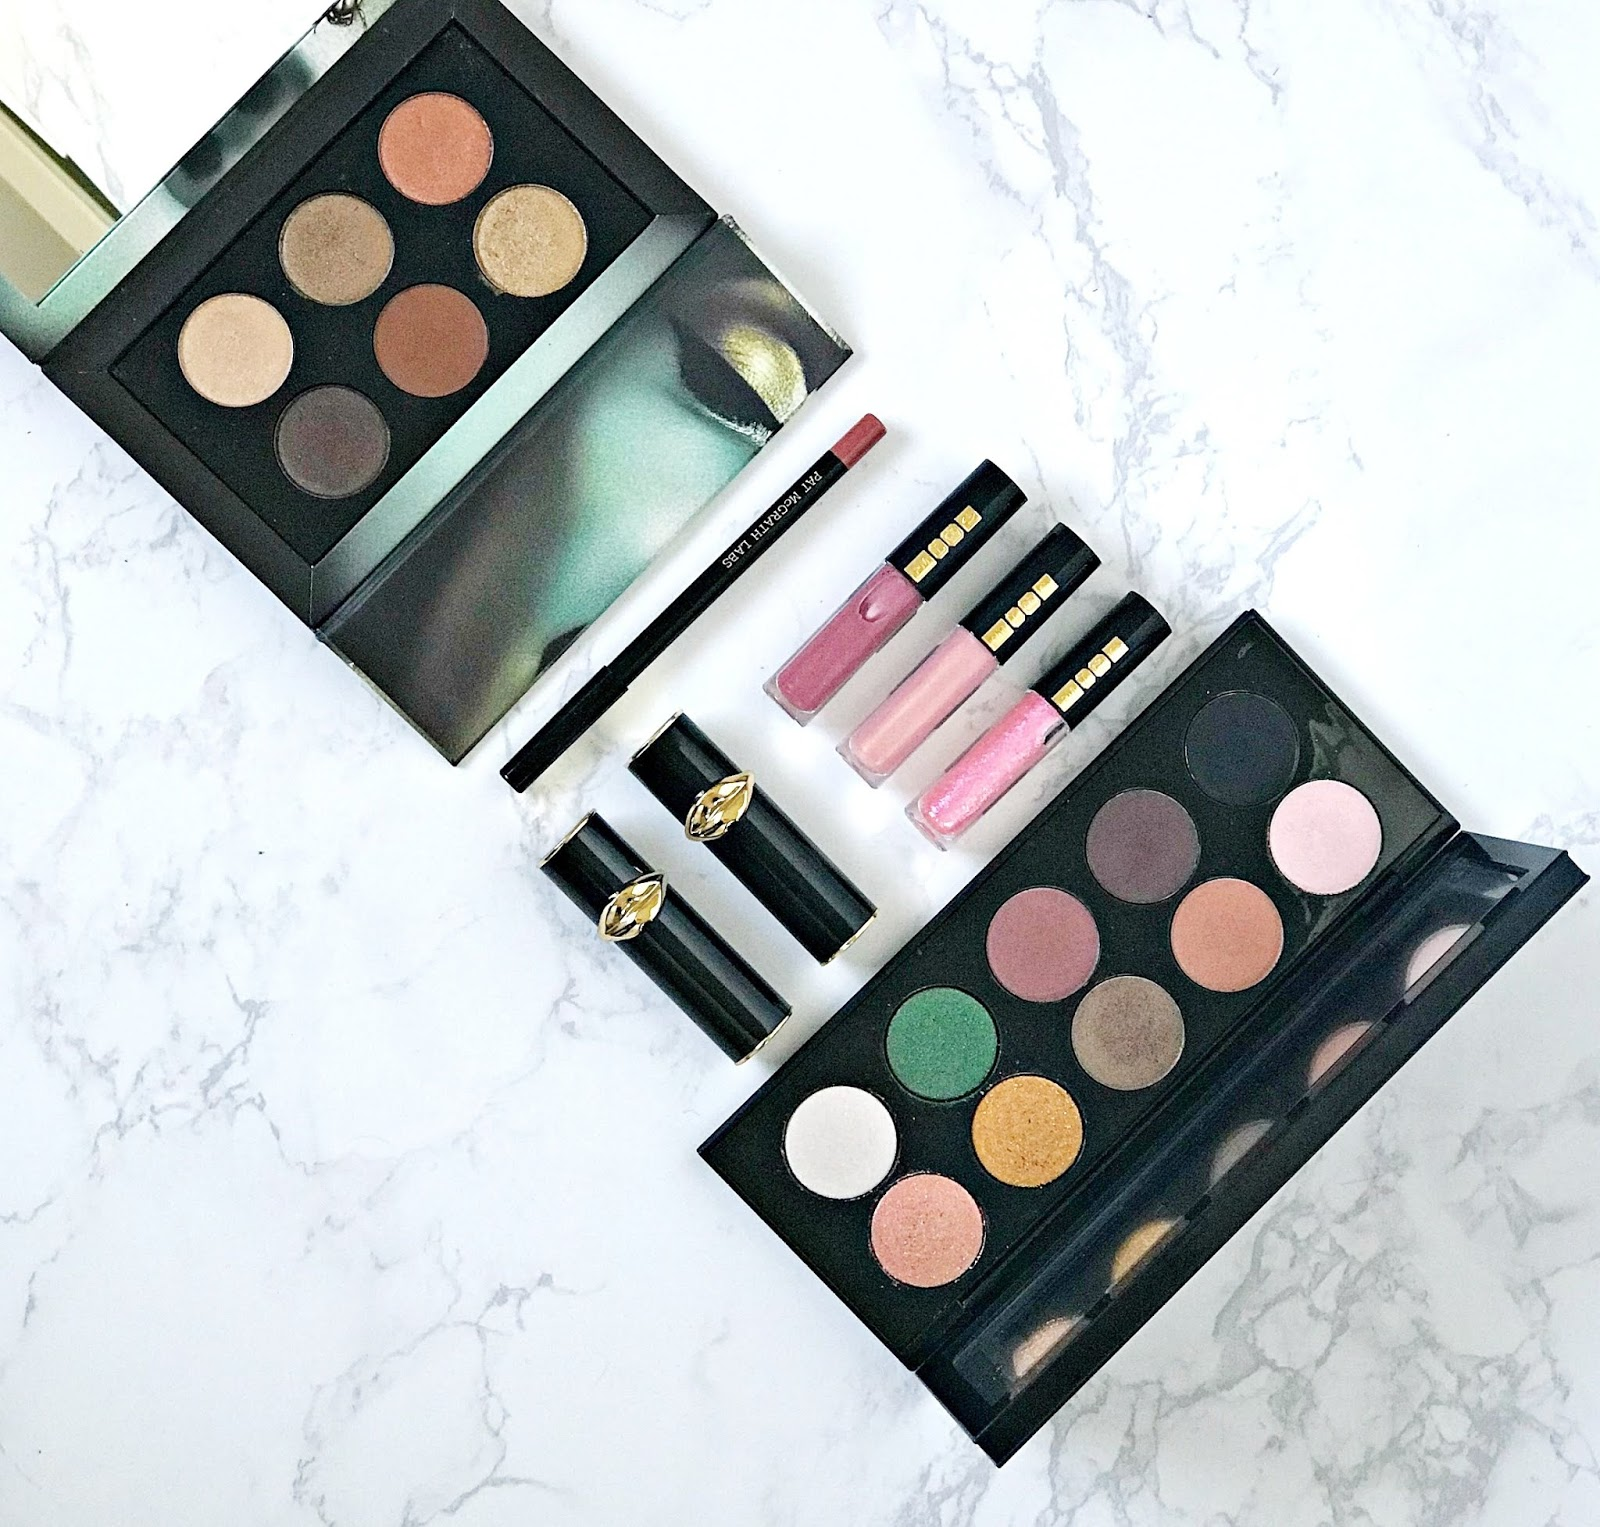 Pat McGrath makeup UK, Pat McGrath makeup review